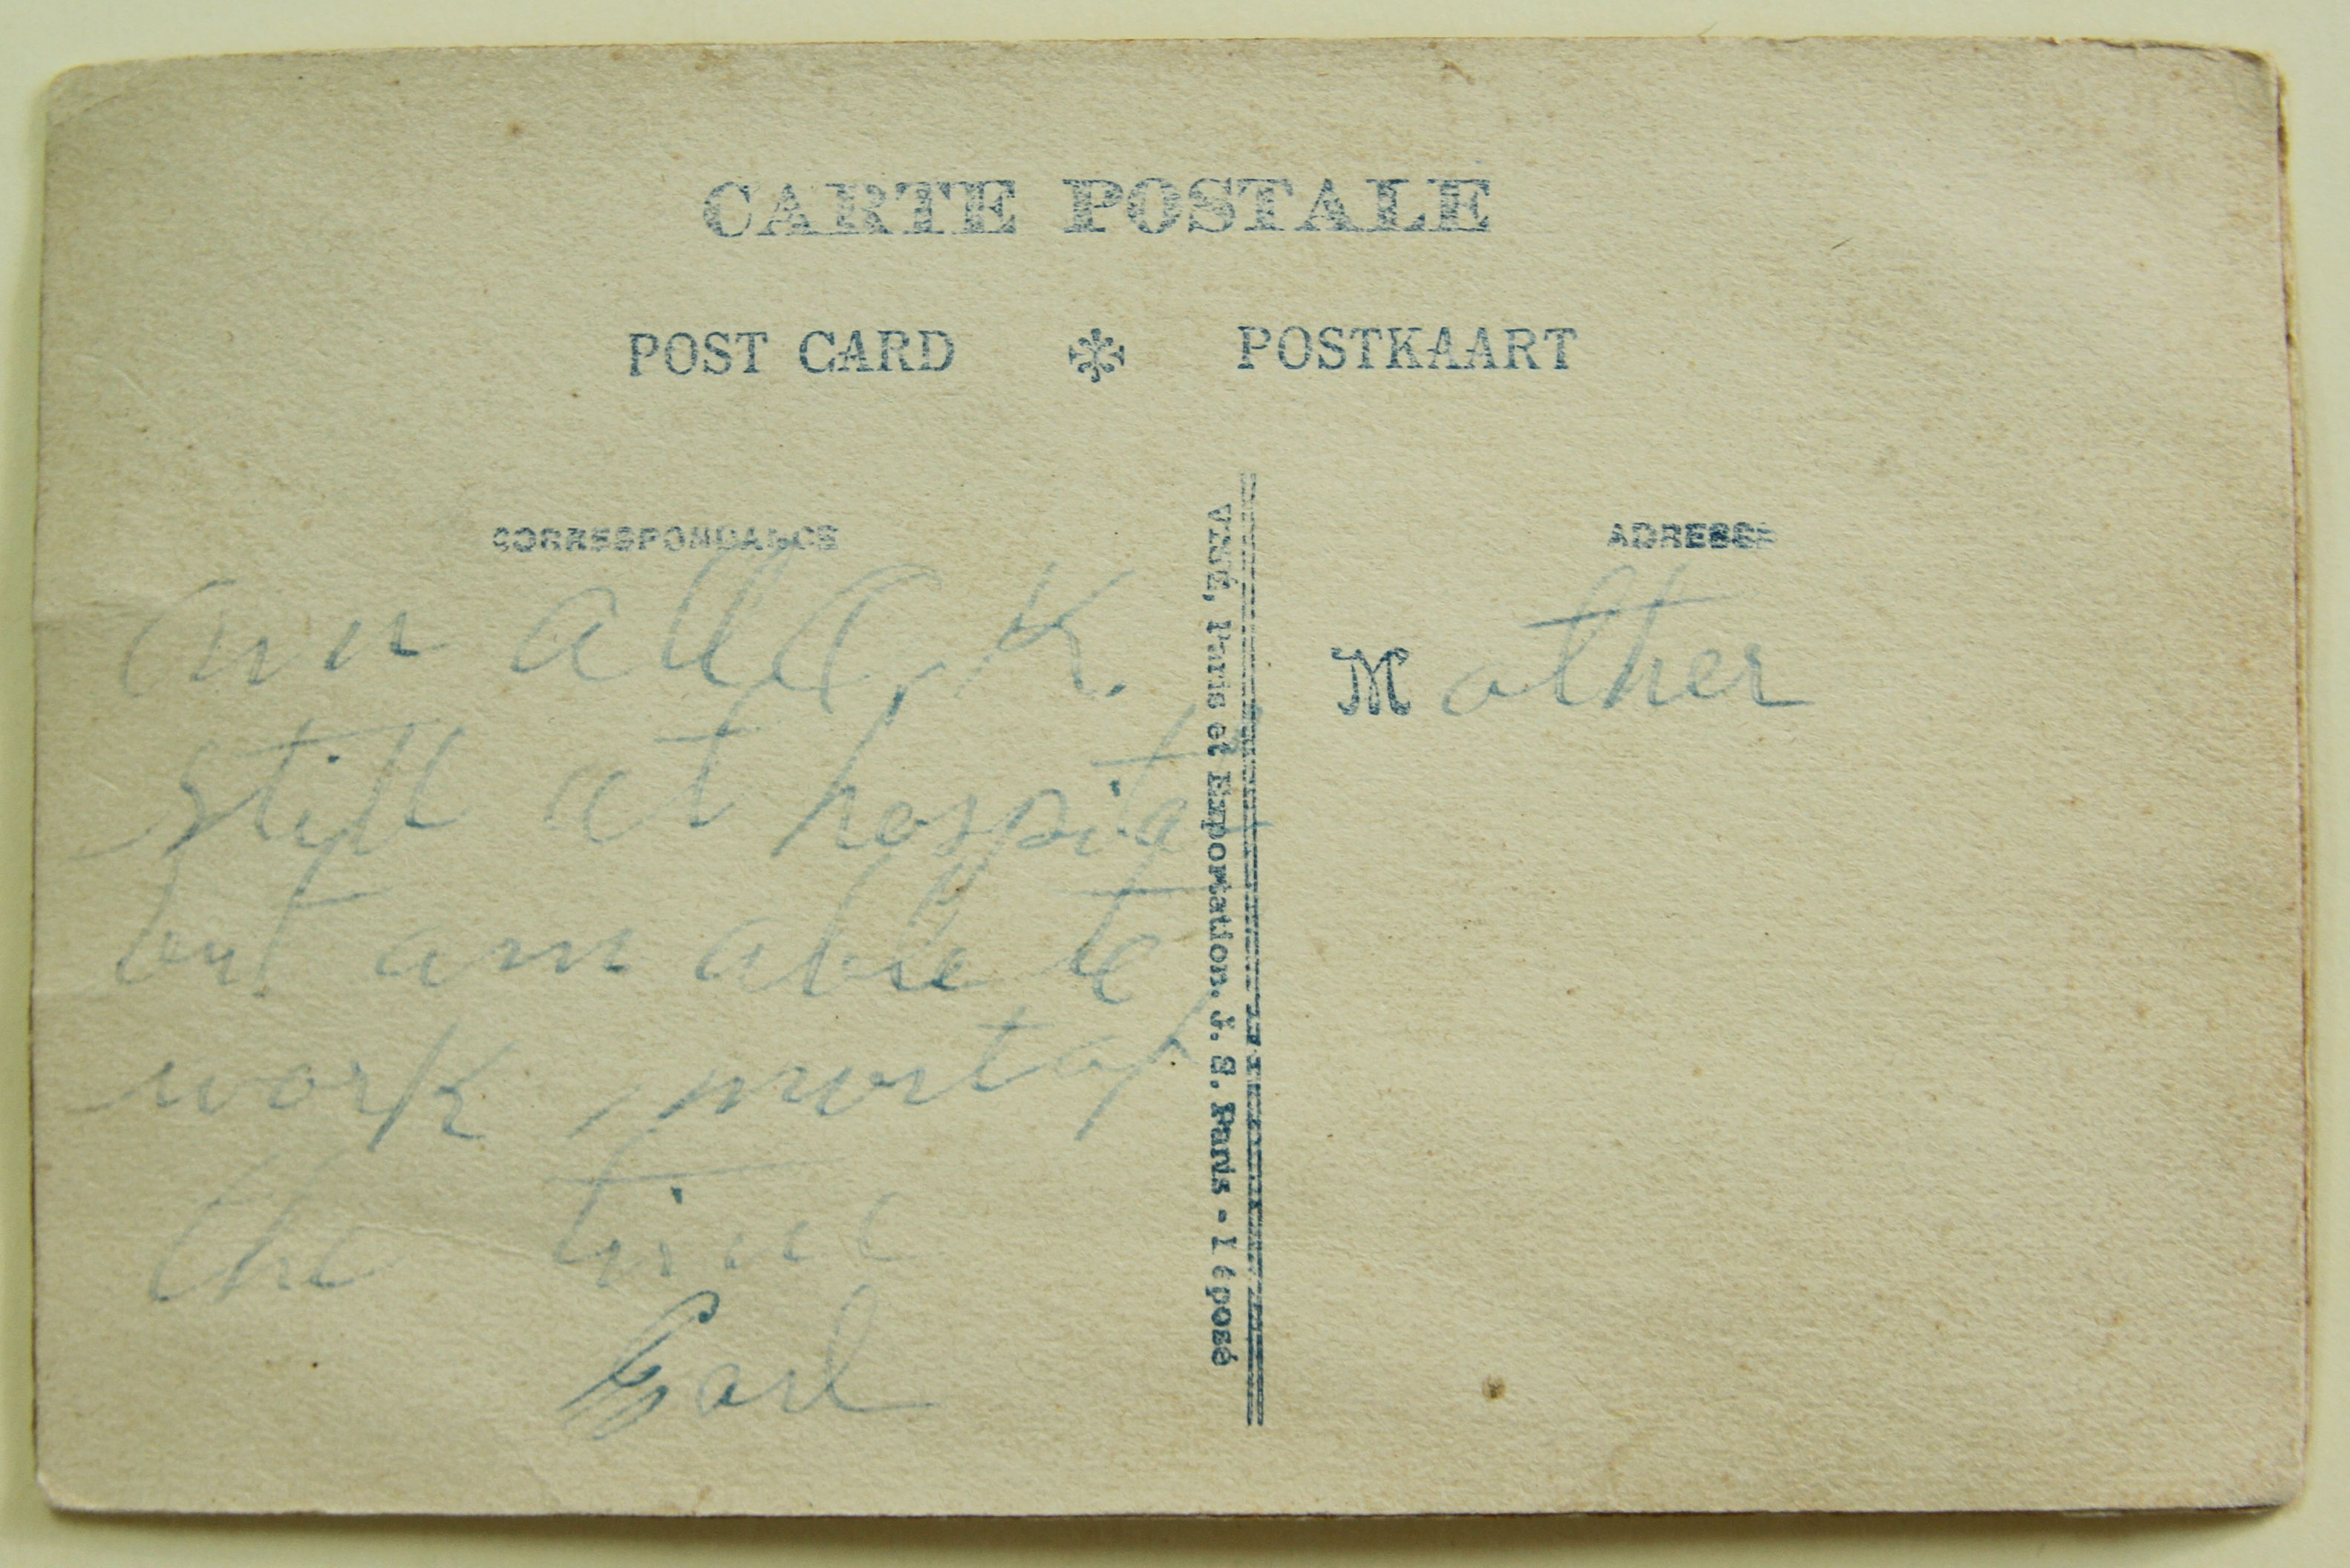 Postcard to Mother, Back, Earl L. Stahl Collection, Courtesy of Craig Bowers.